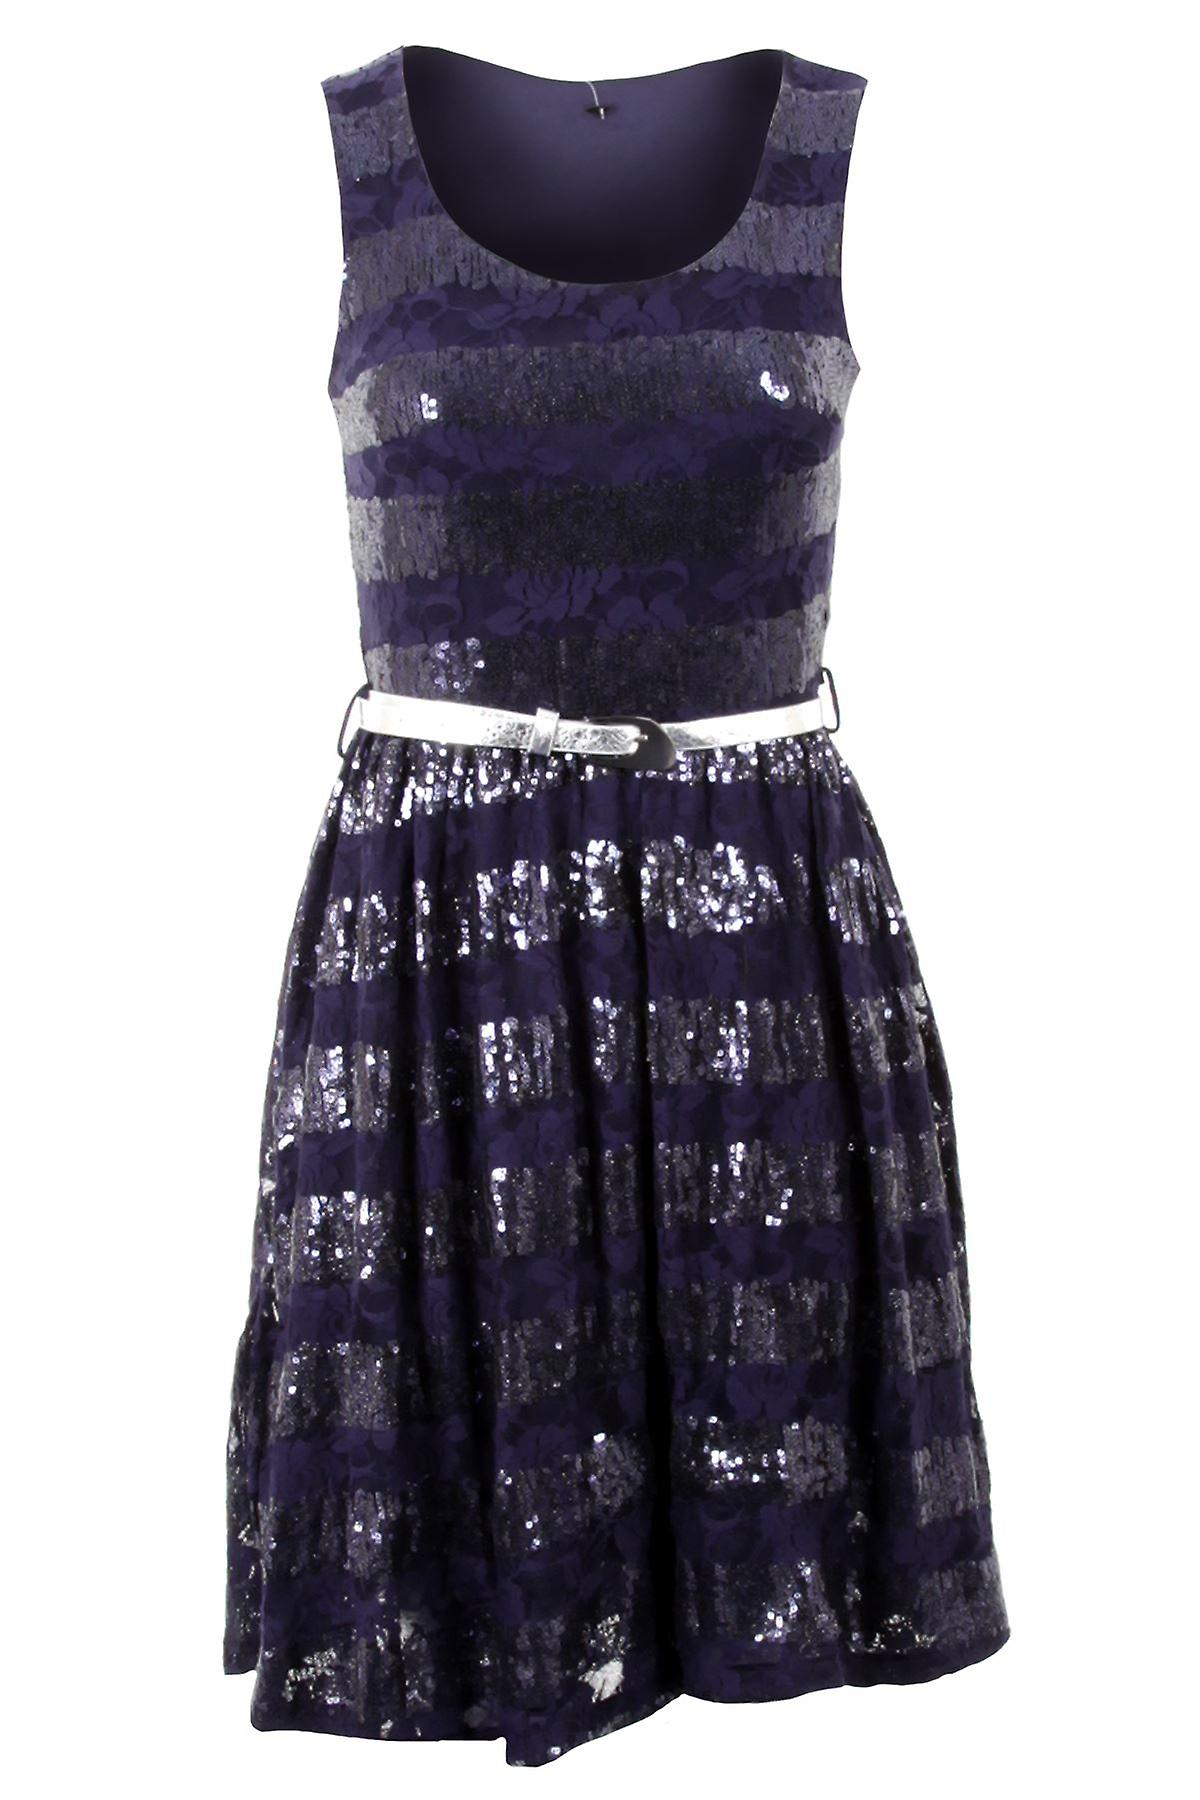 Ladies Floral Lace Print Vertical Sequin Belted Party Flare Skater Women's Dress